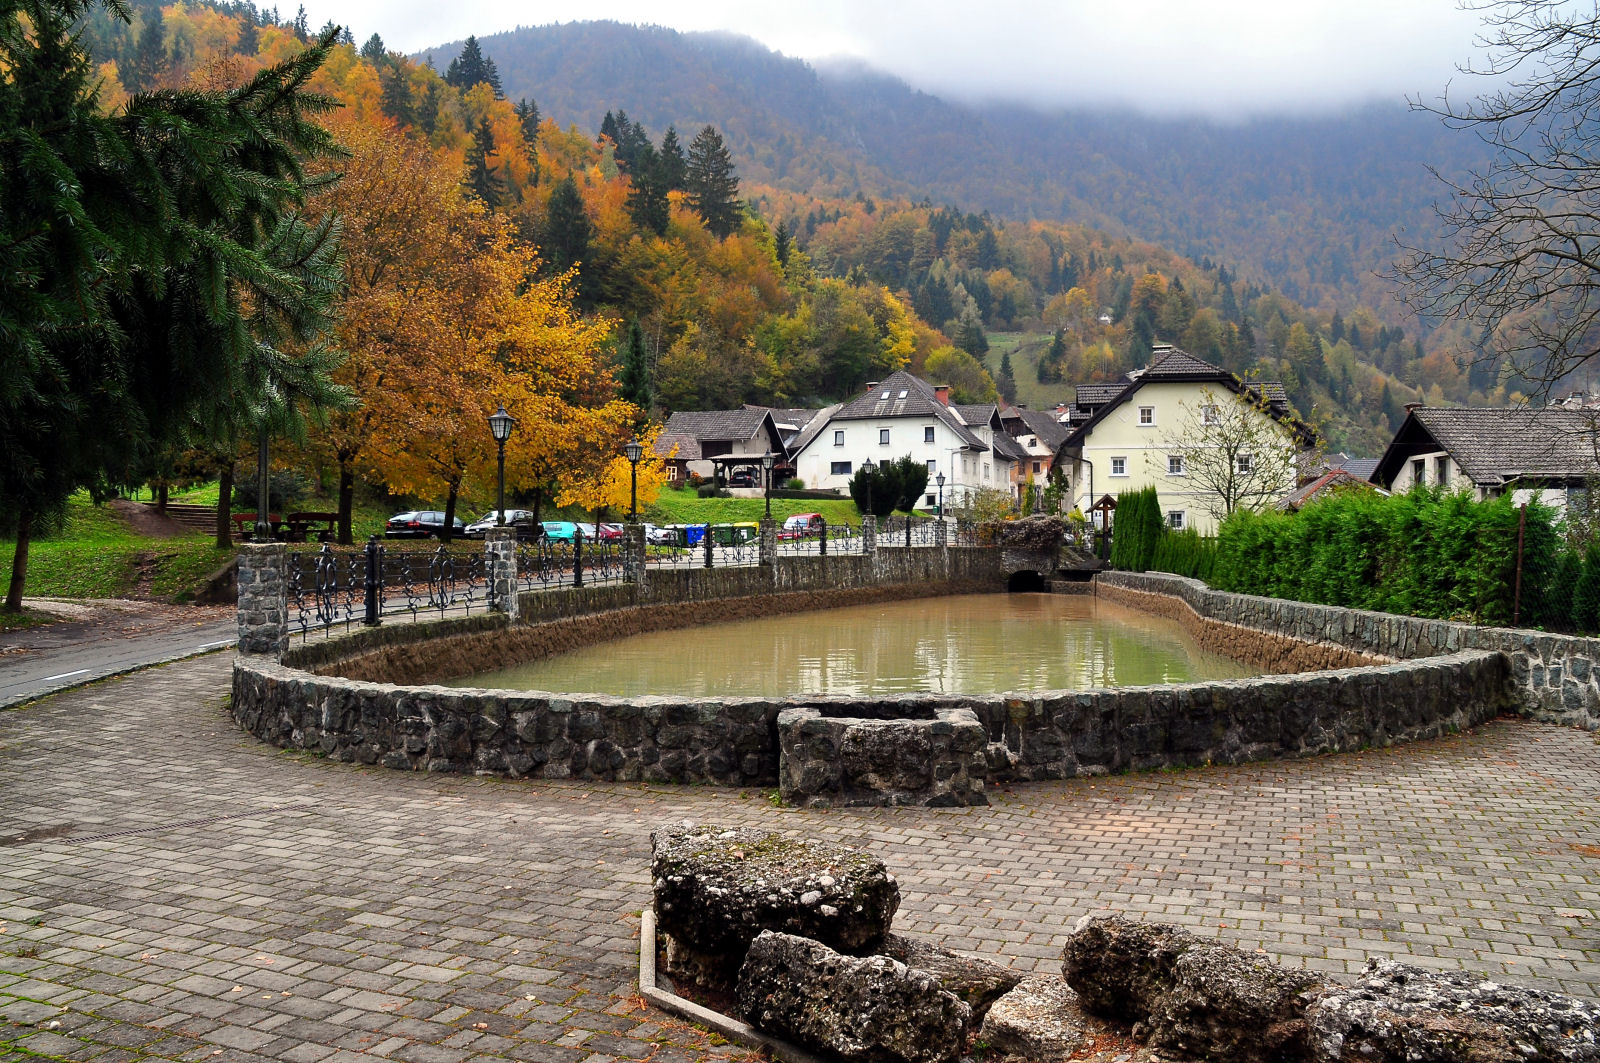 Reservoir and remains of the Lower Ironworks from the 16th century in the village of Kropa, Slovenia